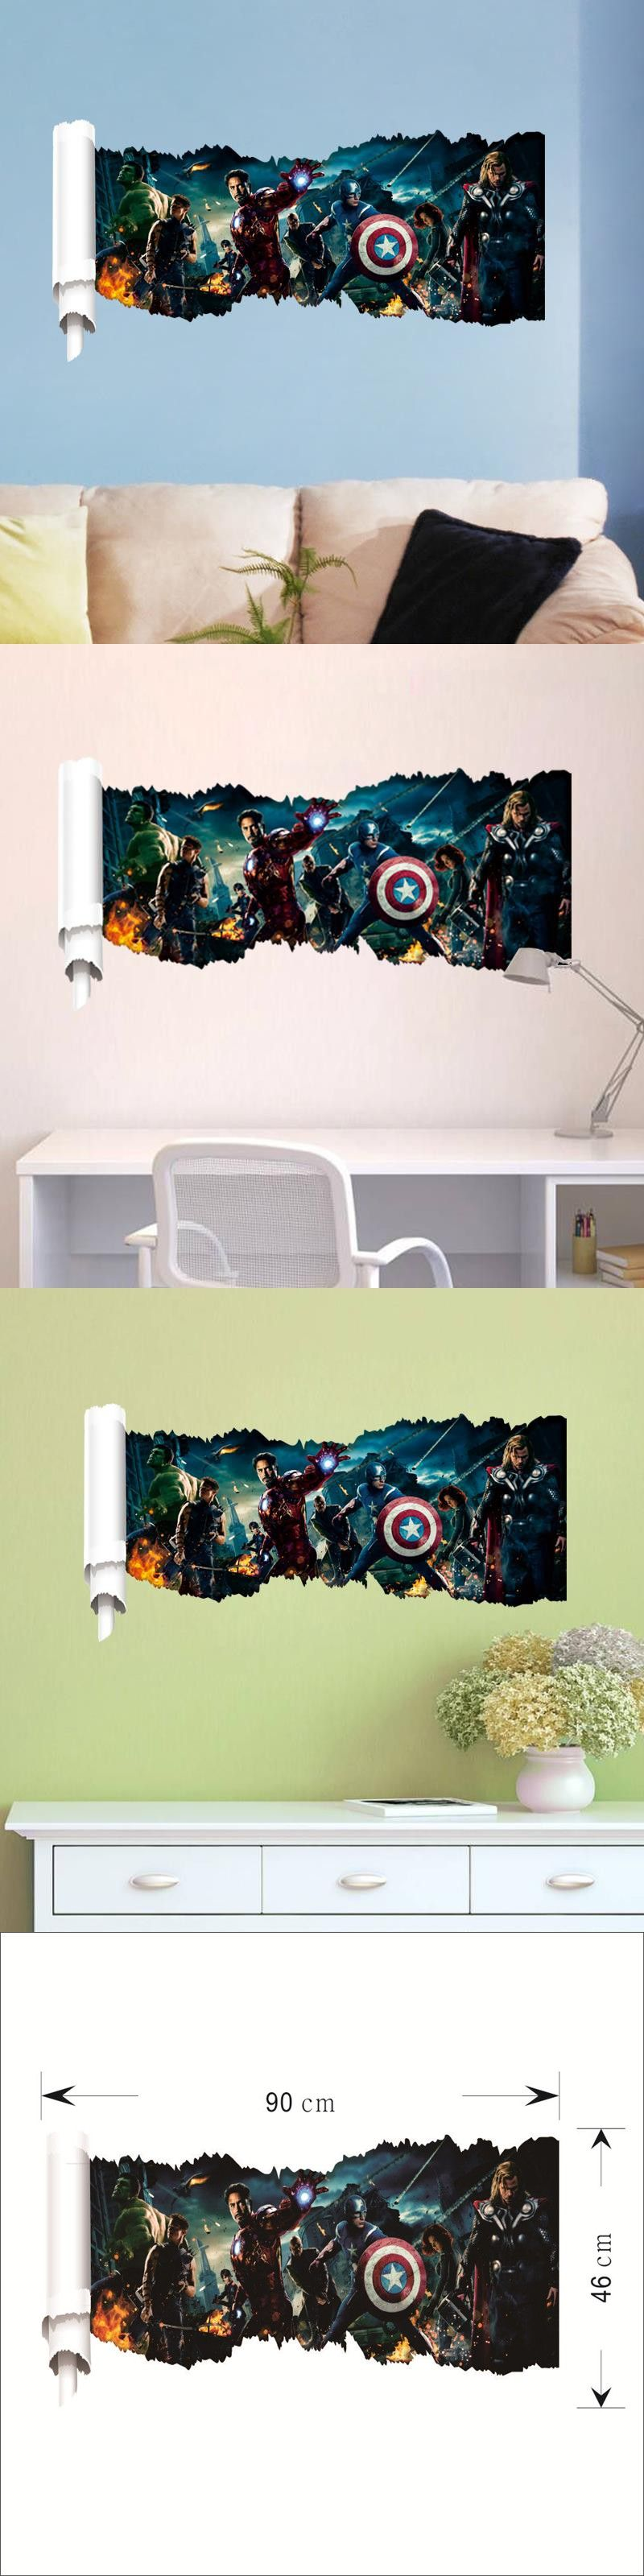 Super hero america captain wall stickers decor 1432. diy kids bedroom home decals removable cartoon movie mural art posters 3.5 $7.93